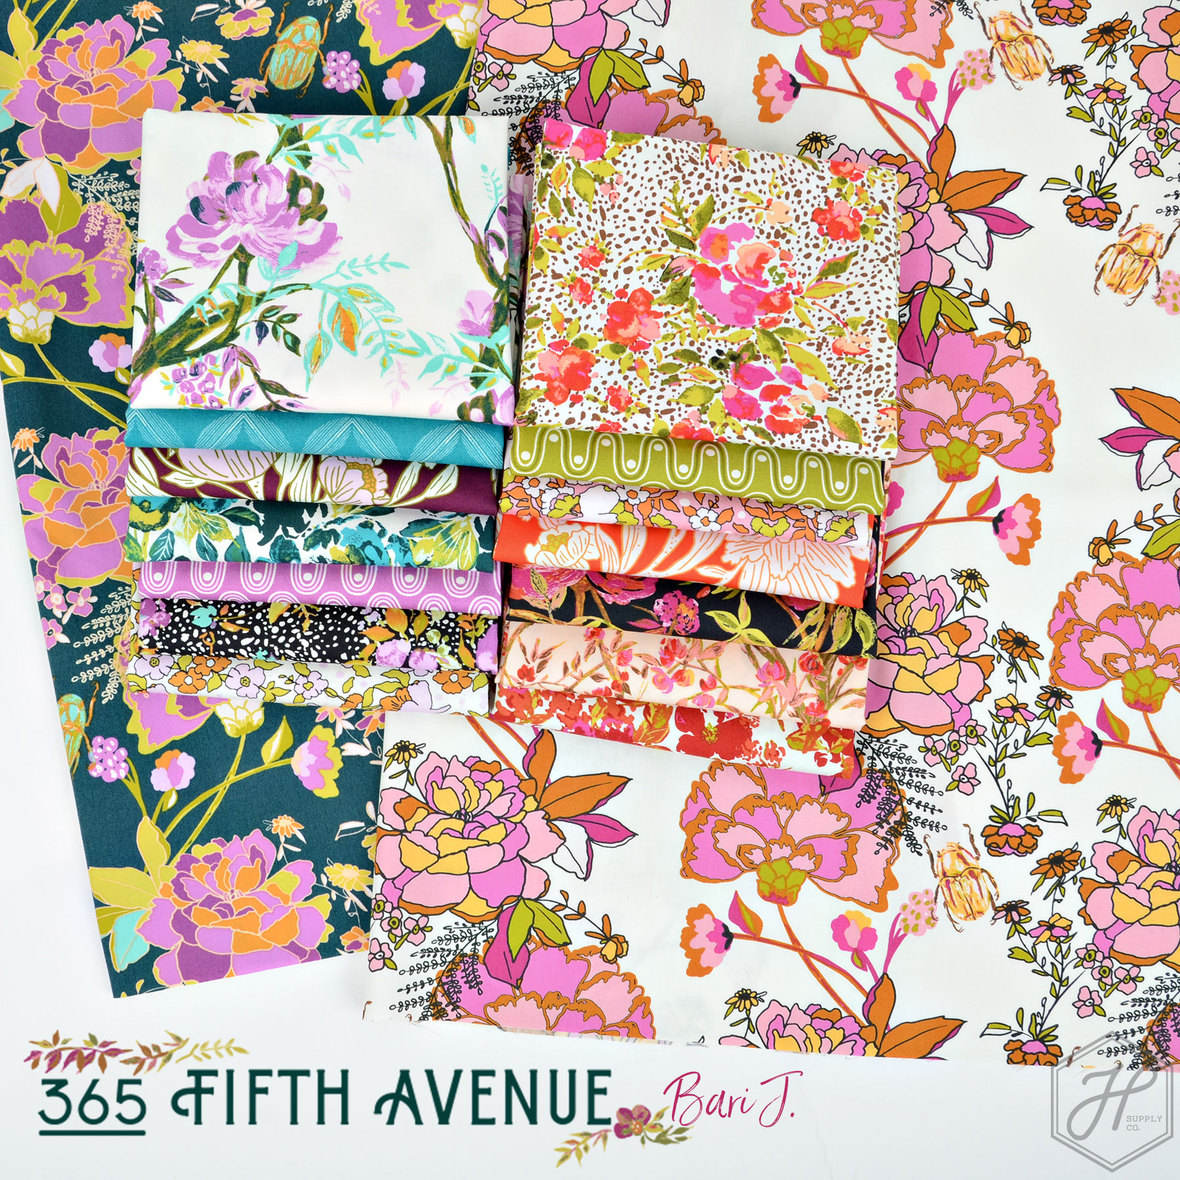 365-Fifth-Avenue-Fabric-by-Bari-J-at-Hawthorne-Supply-Co